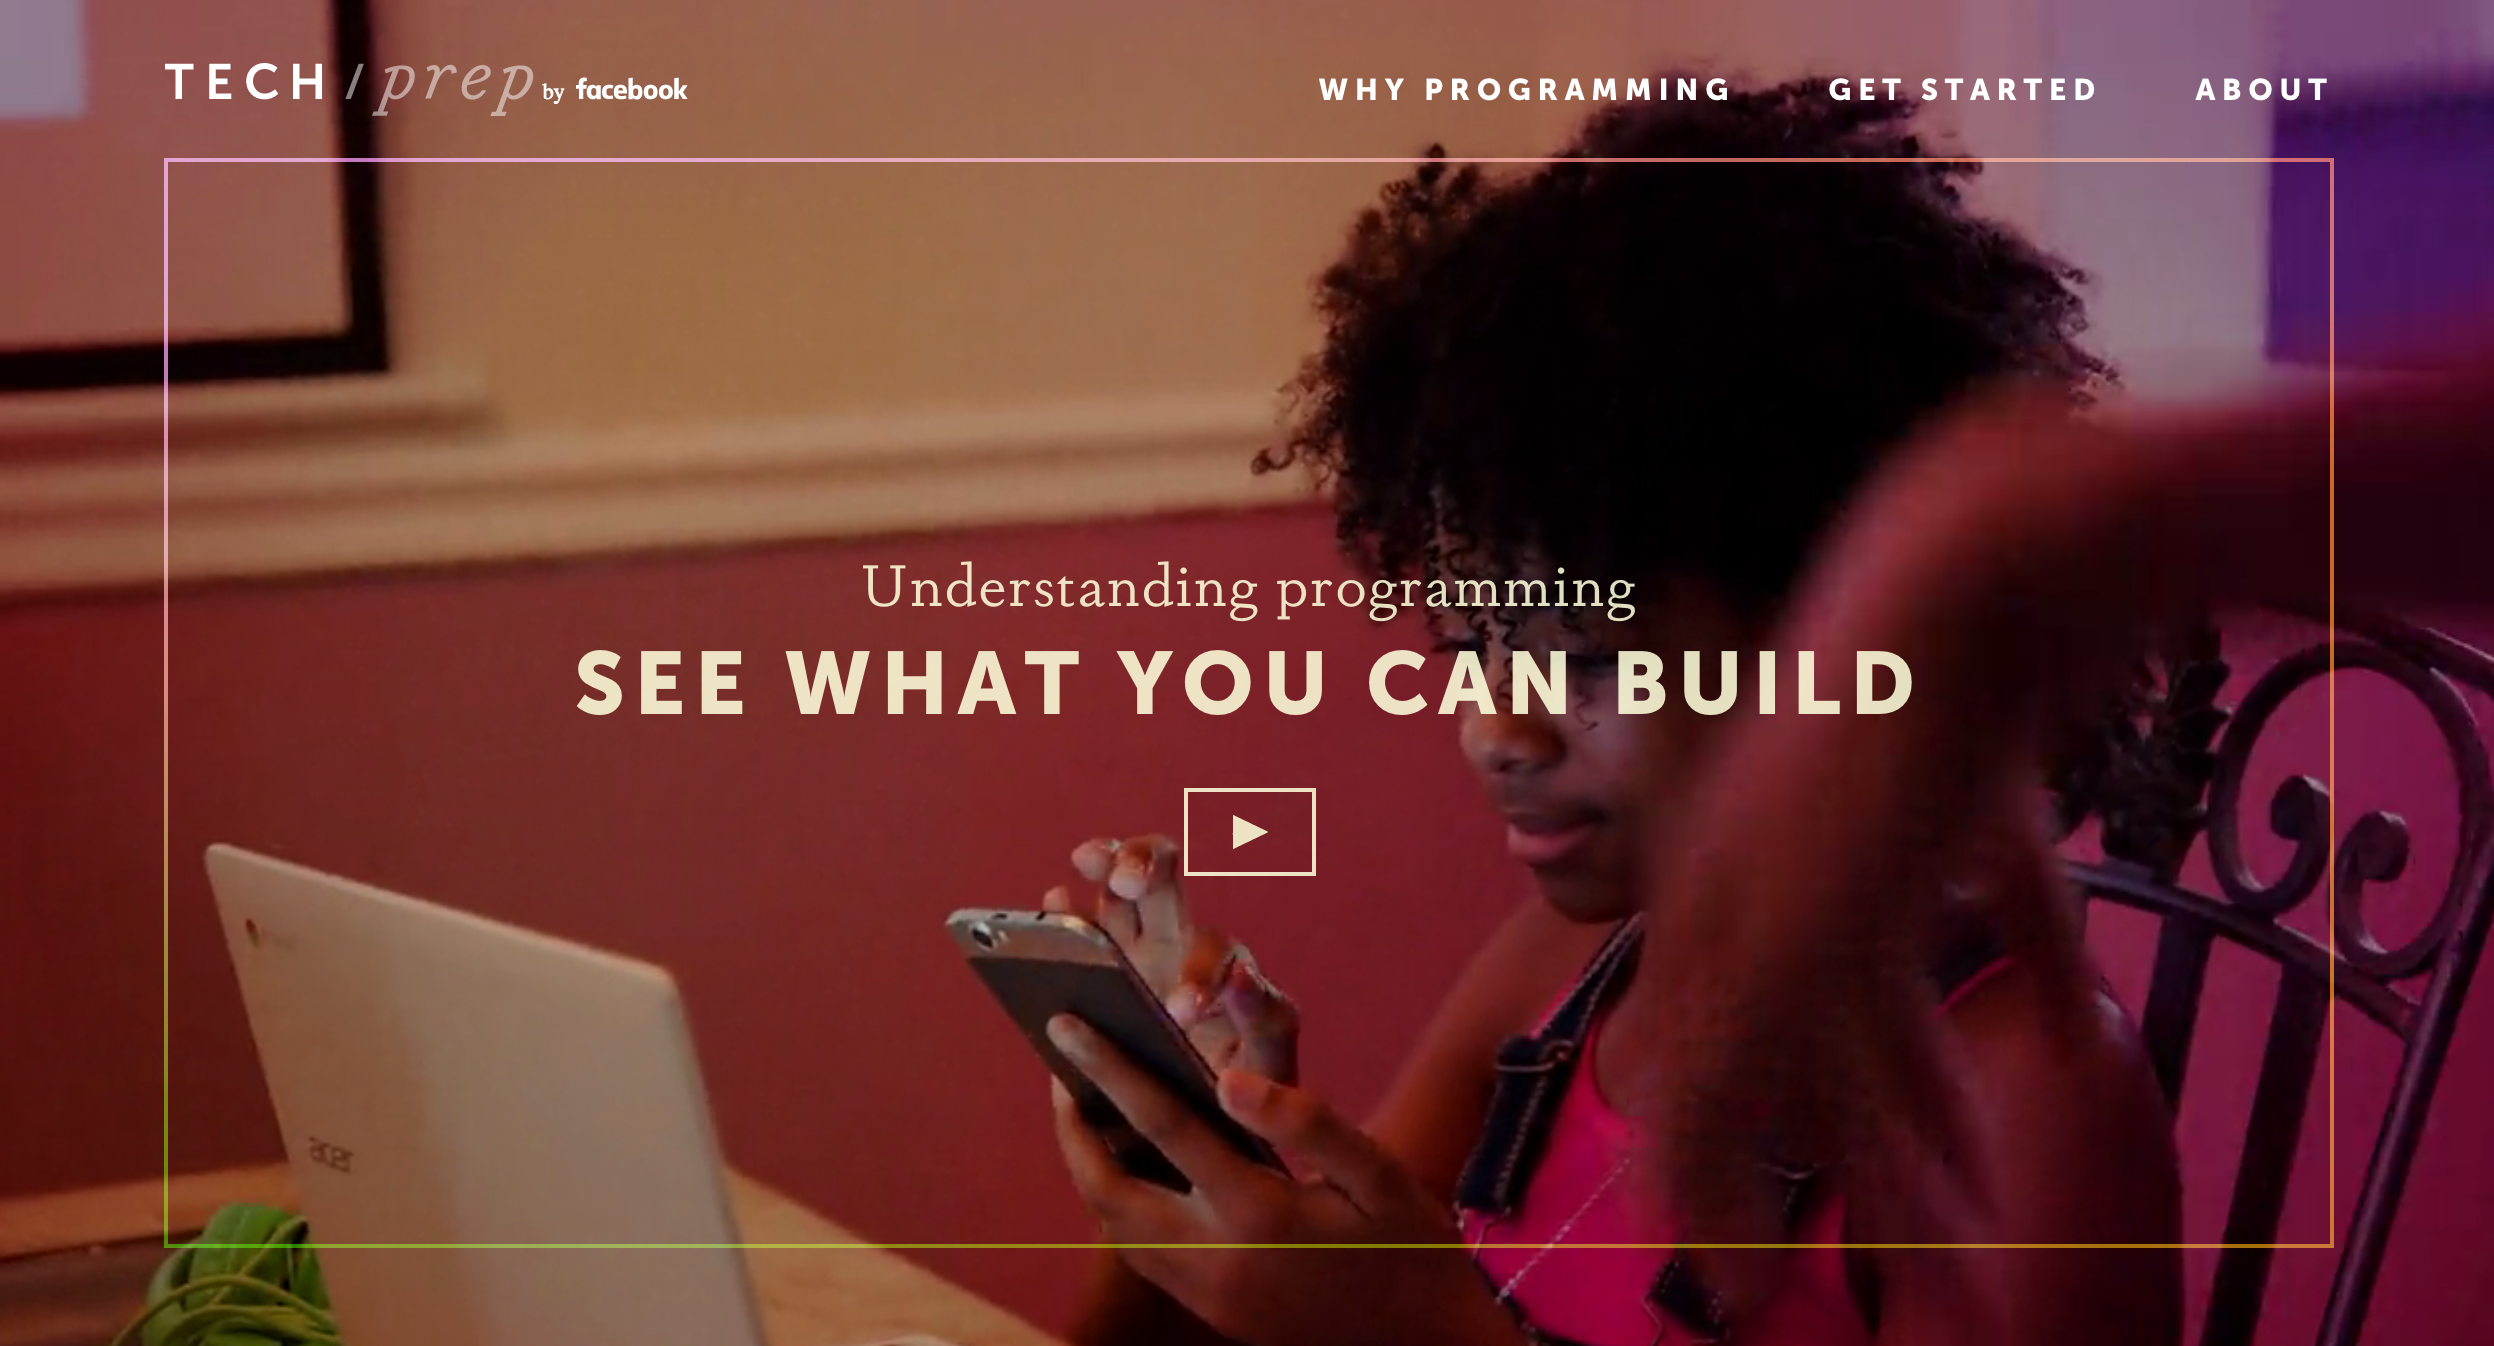 TechPrep Is Facebook's Attempt To Diversify Computer Science